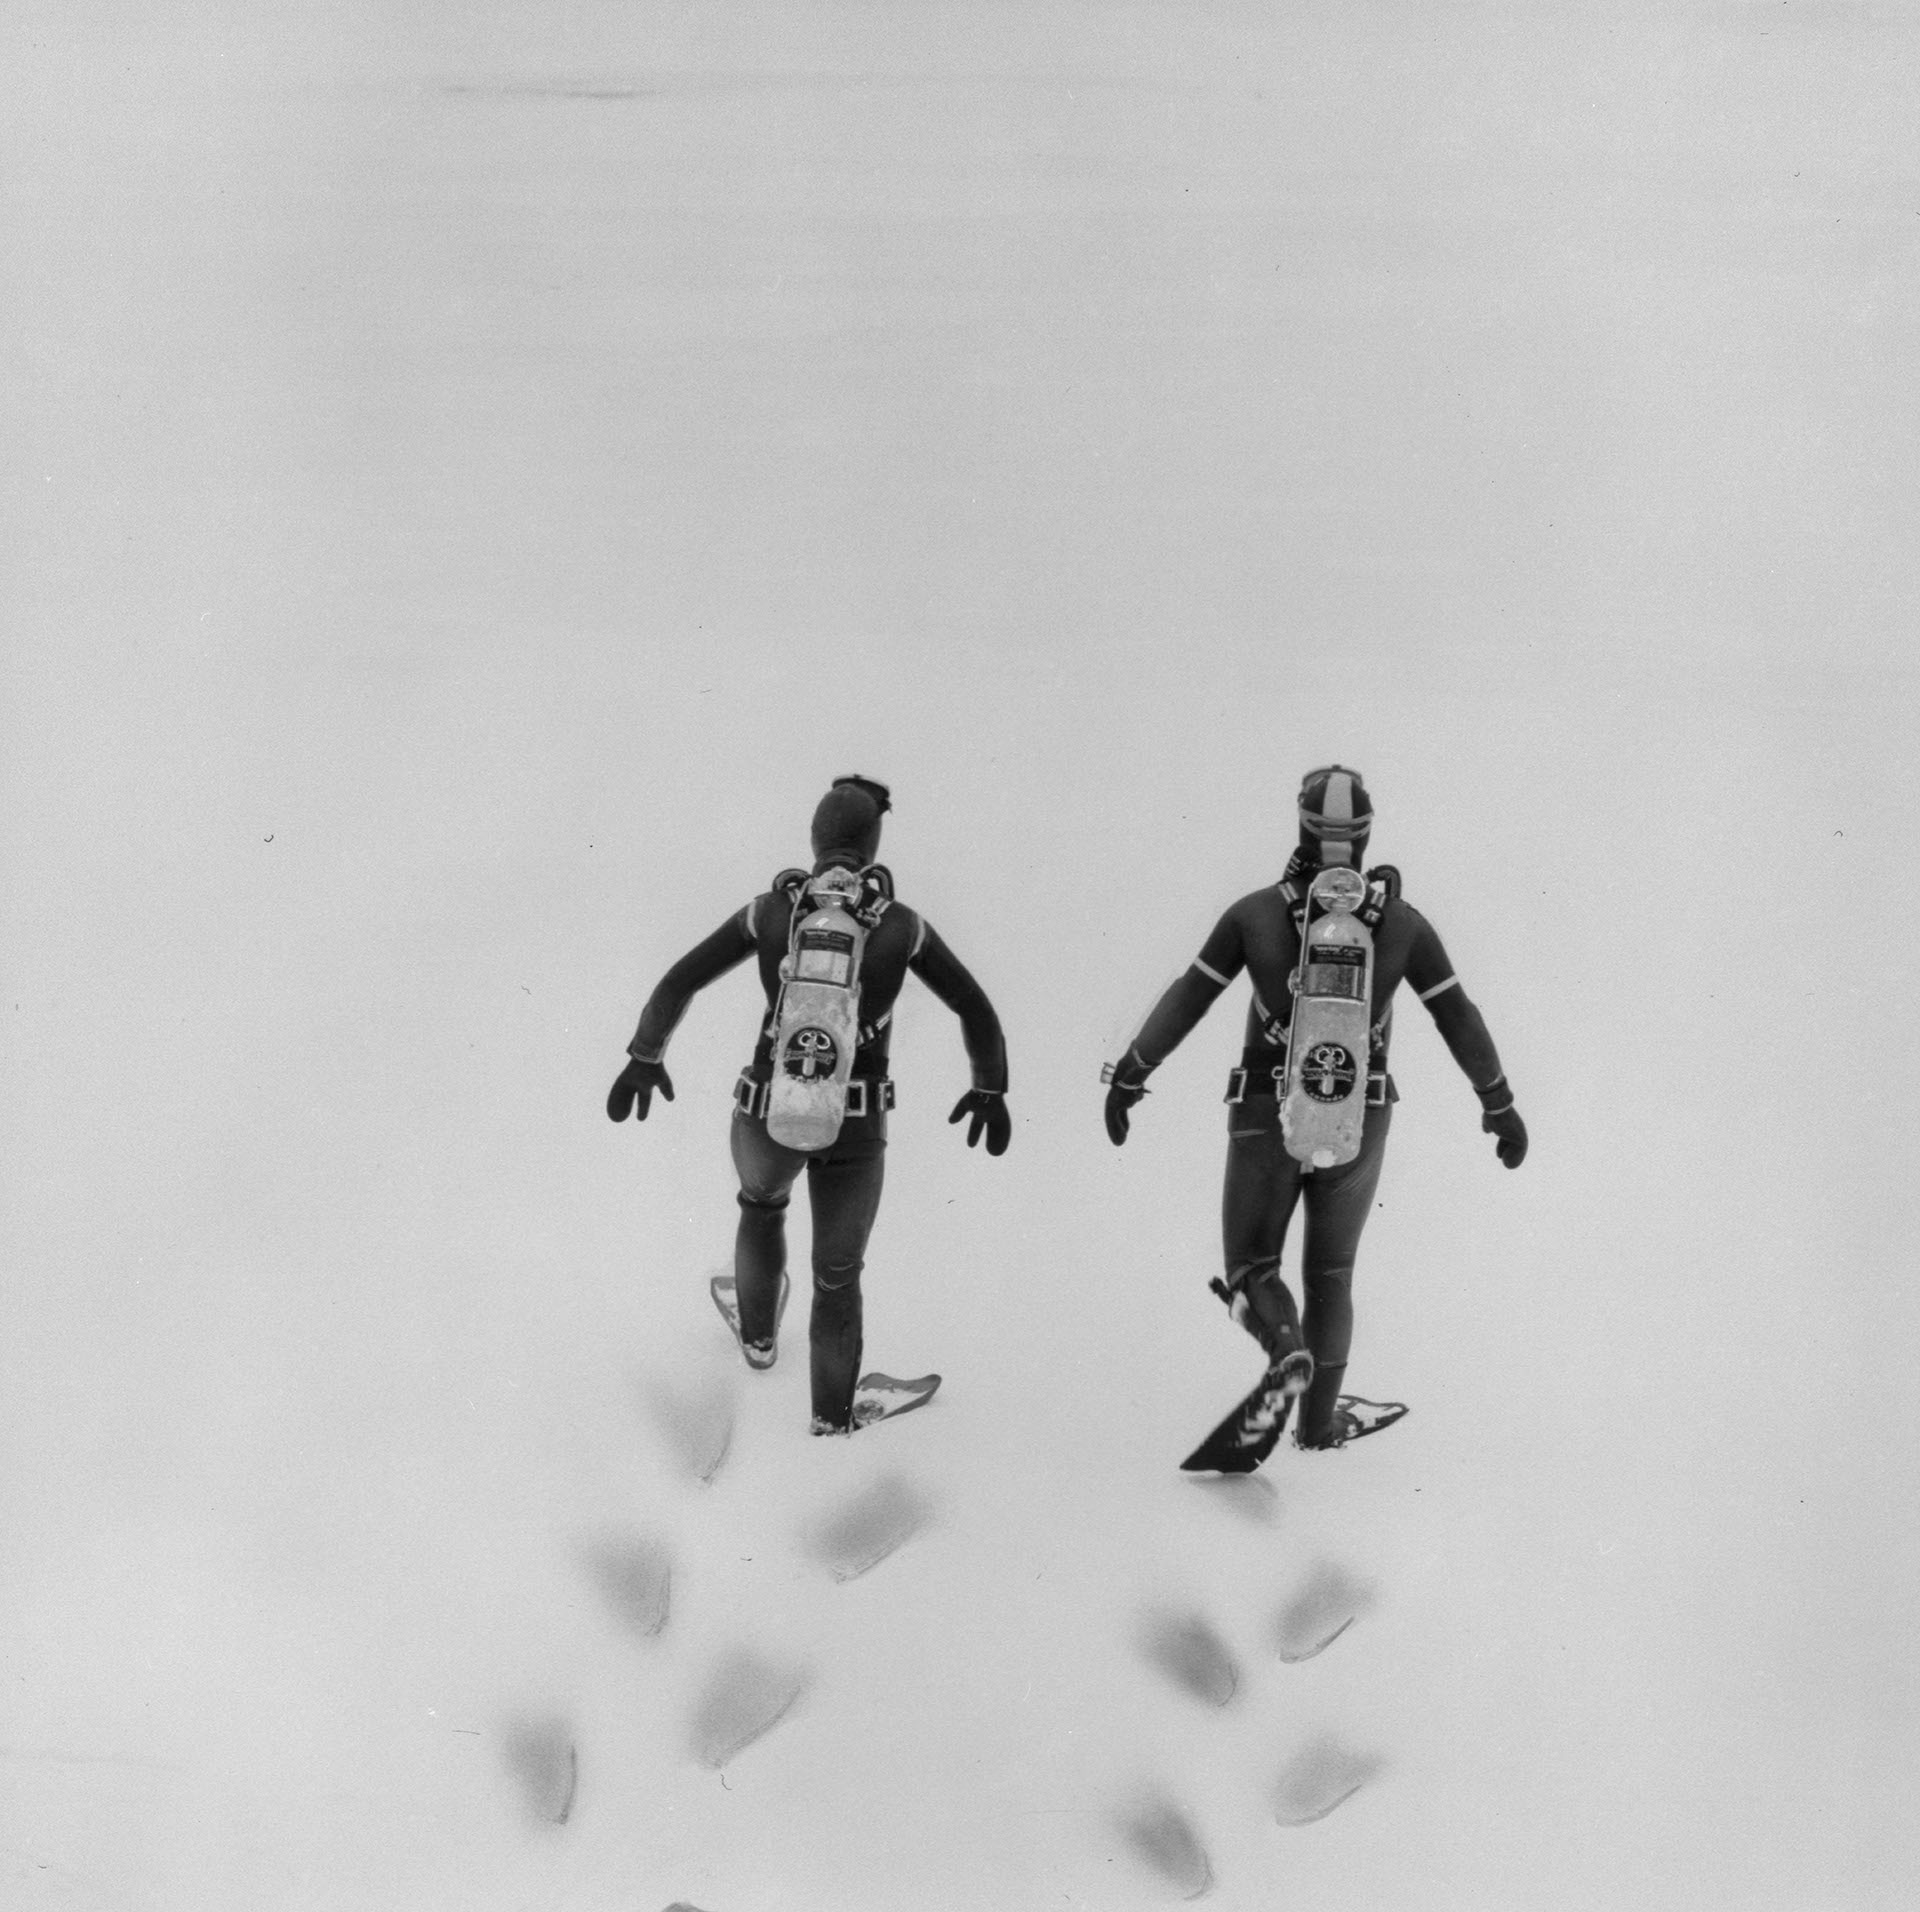 Two scuba divers, seen from behind, walking across snow